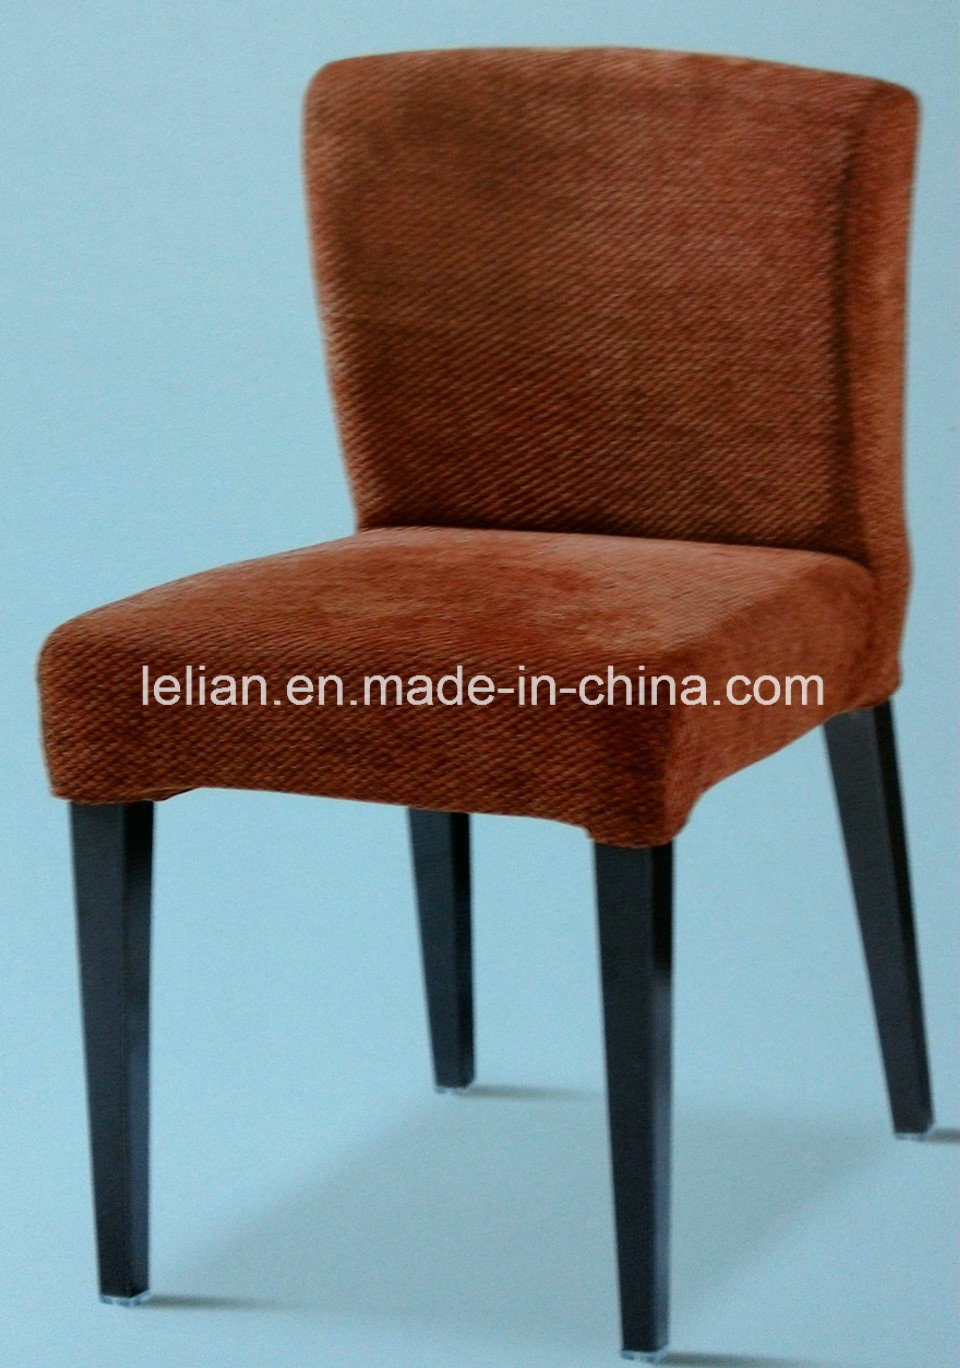 Swell Hot Item New Style Fabric Swan Chair Bar Stool Comfortable Home Chair Lamtechconsult Wood Chair Design Ideas Lamtechconsultcom